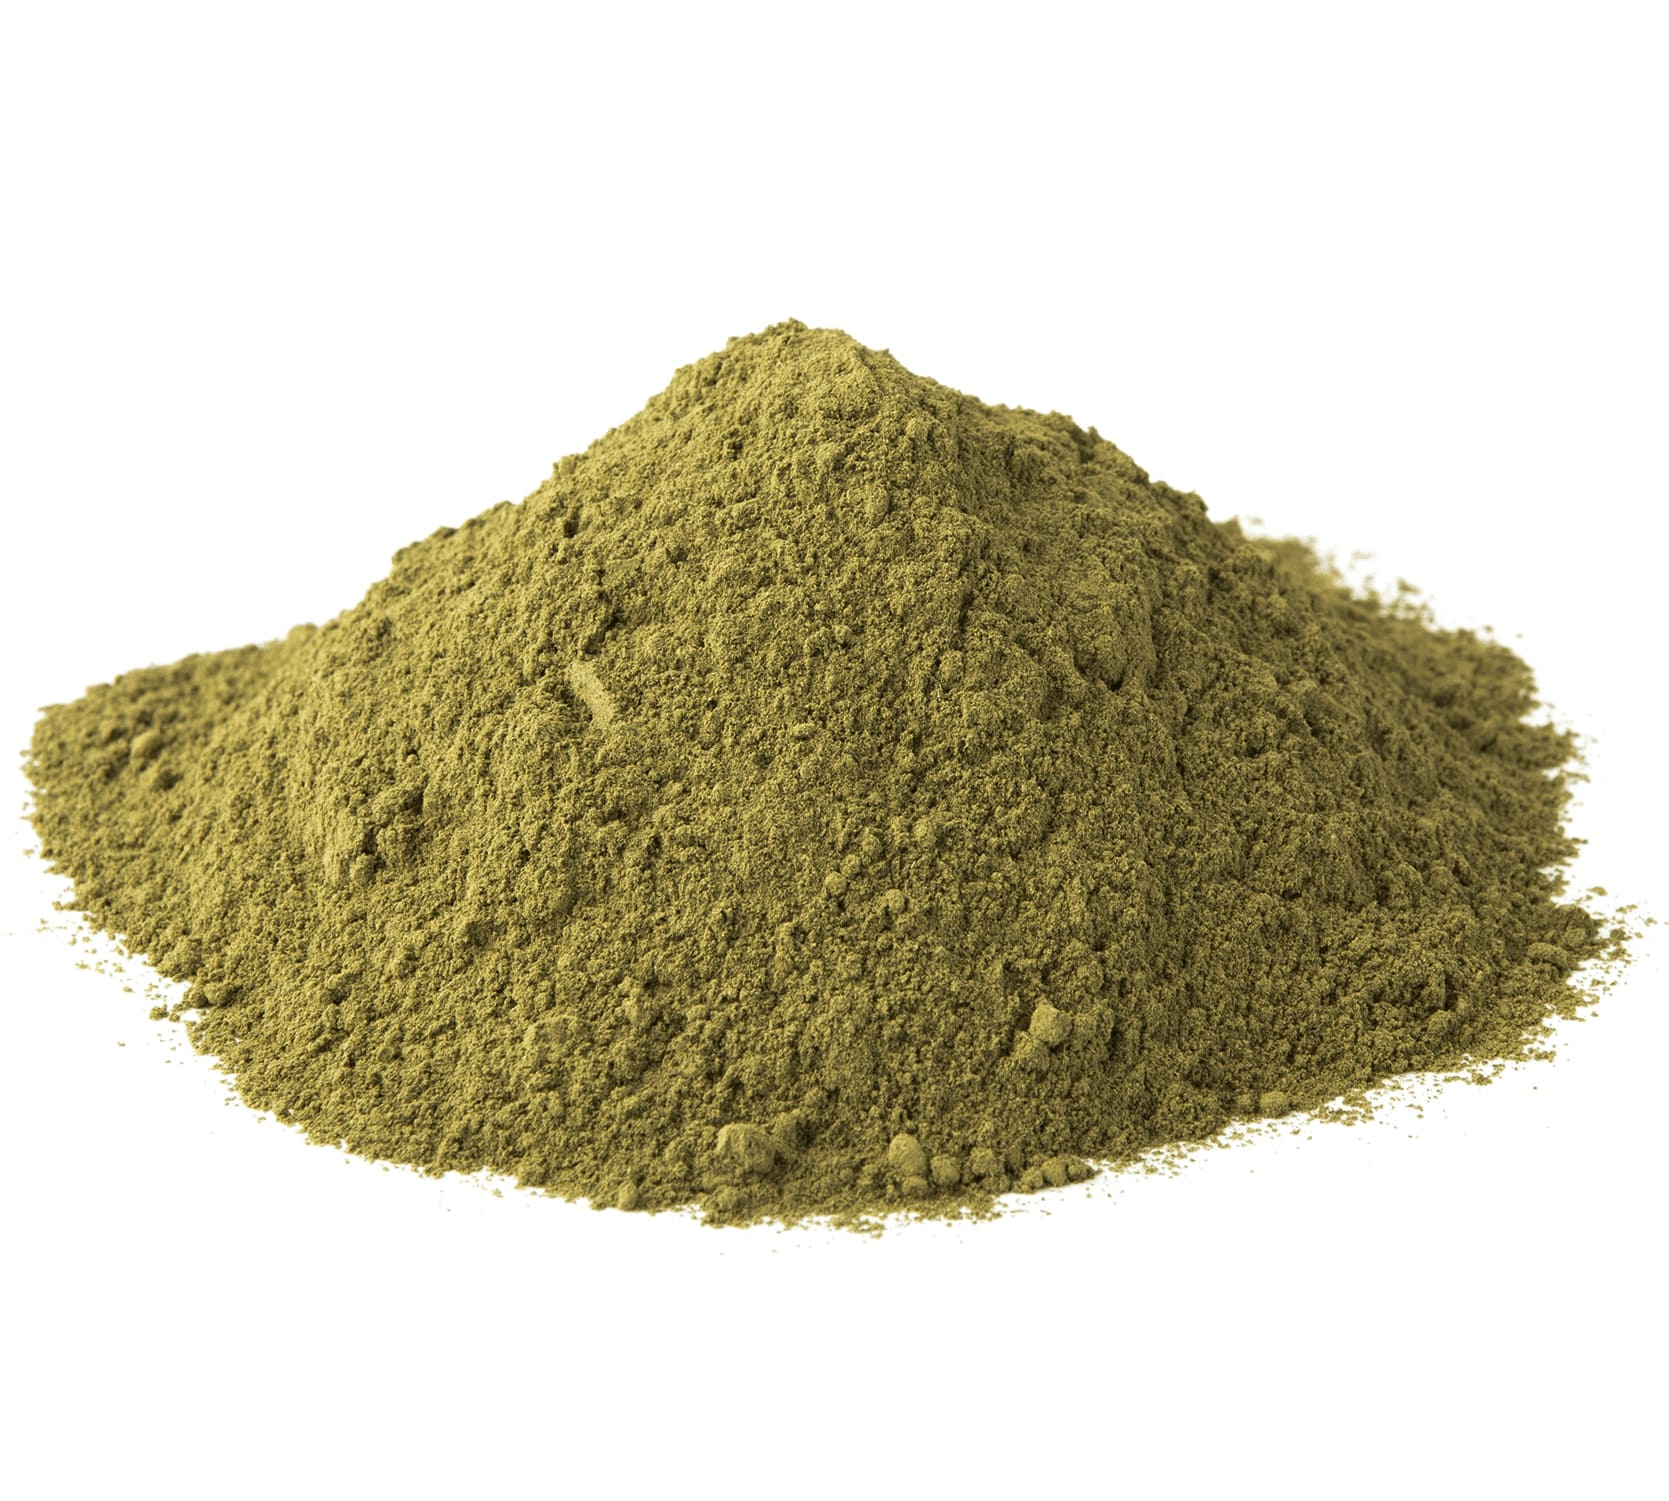 Maeng Da Kratom for Sale